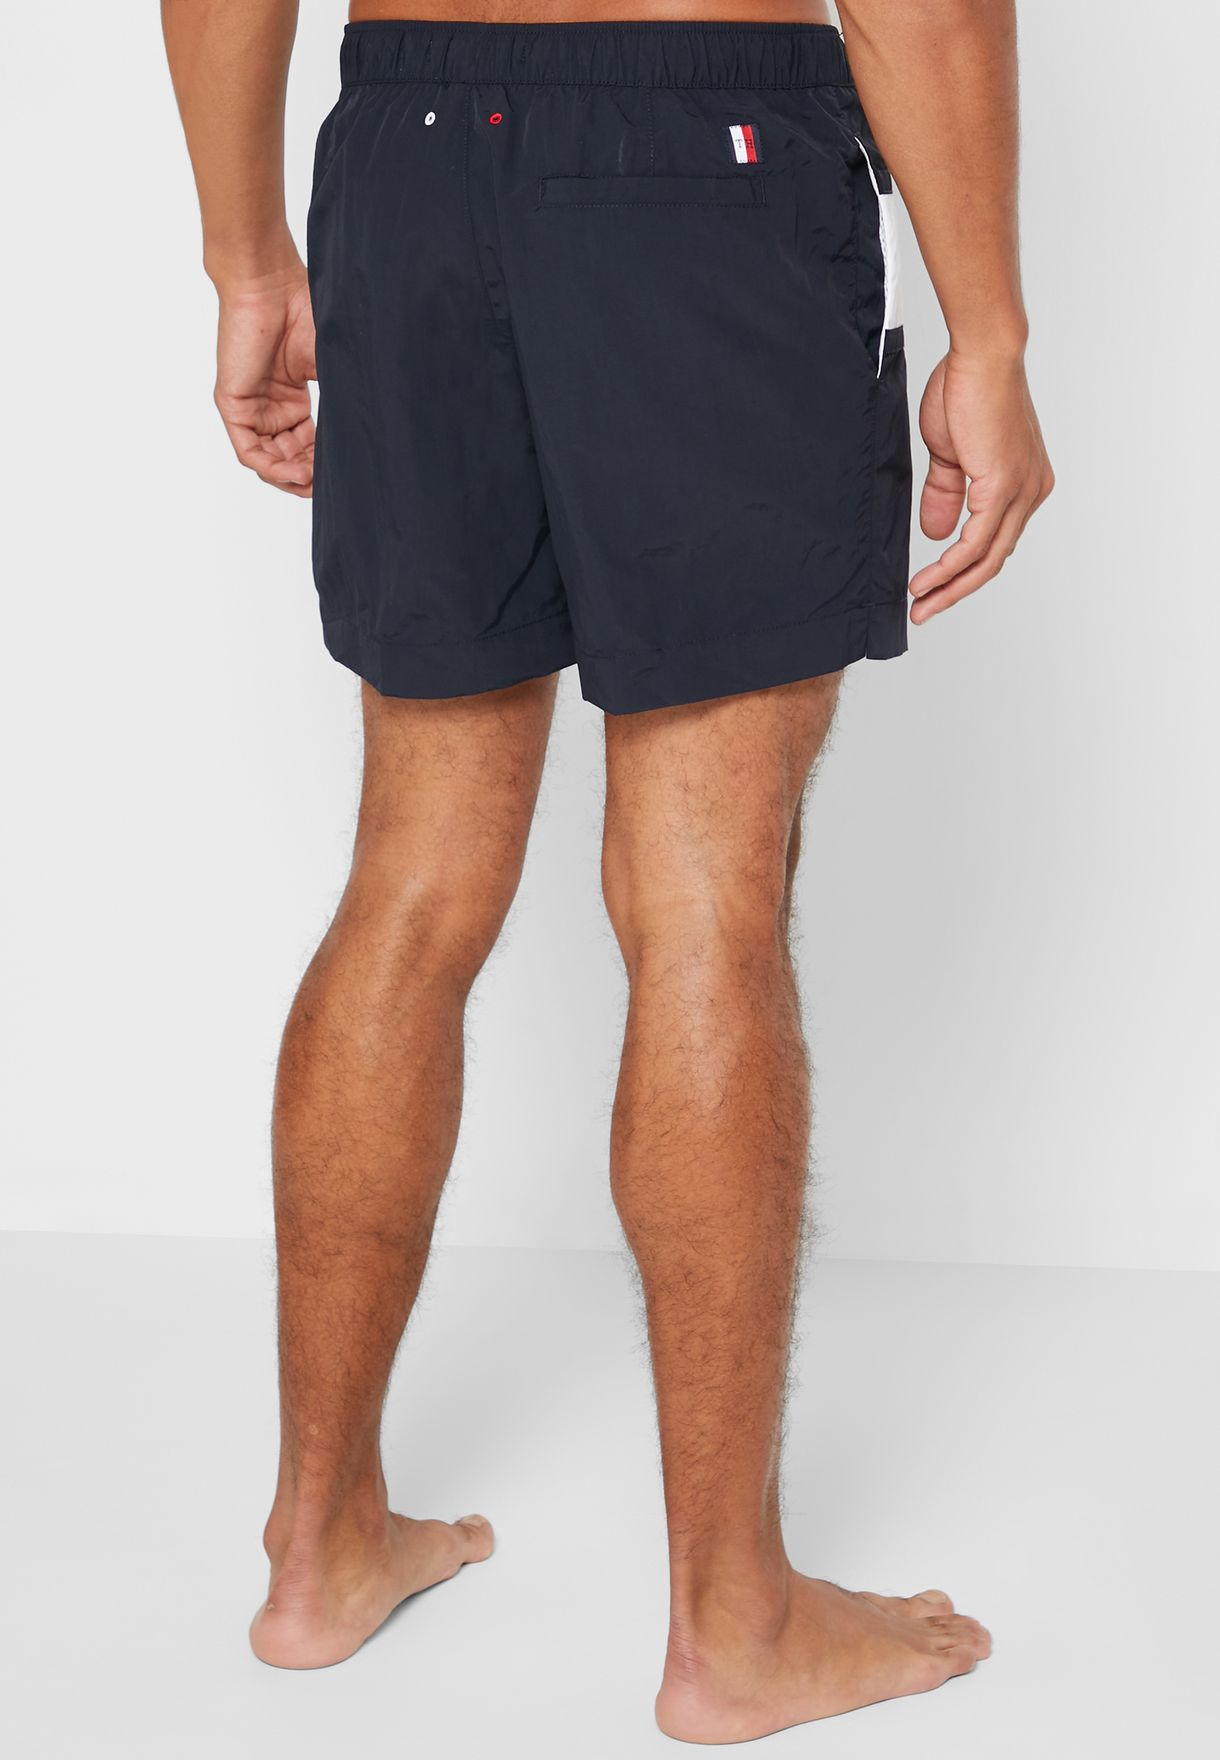 Medium Drawstring Shorts